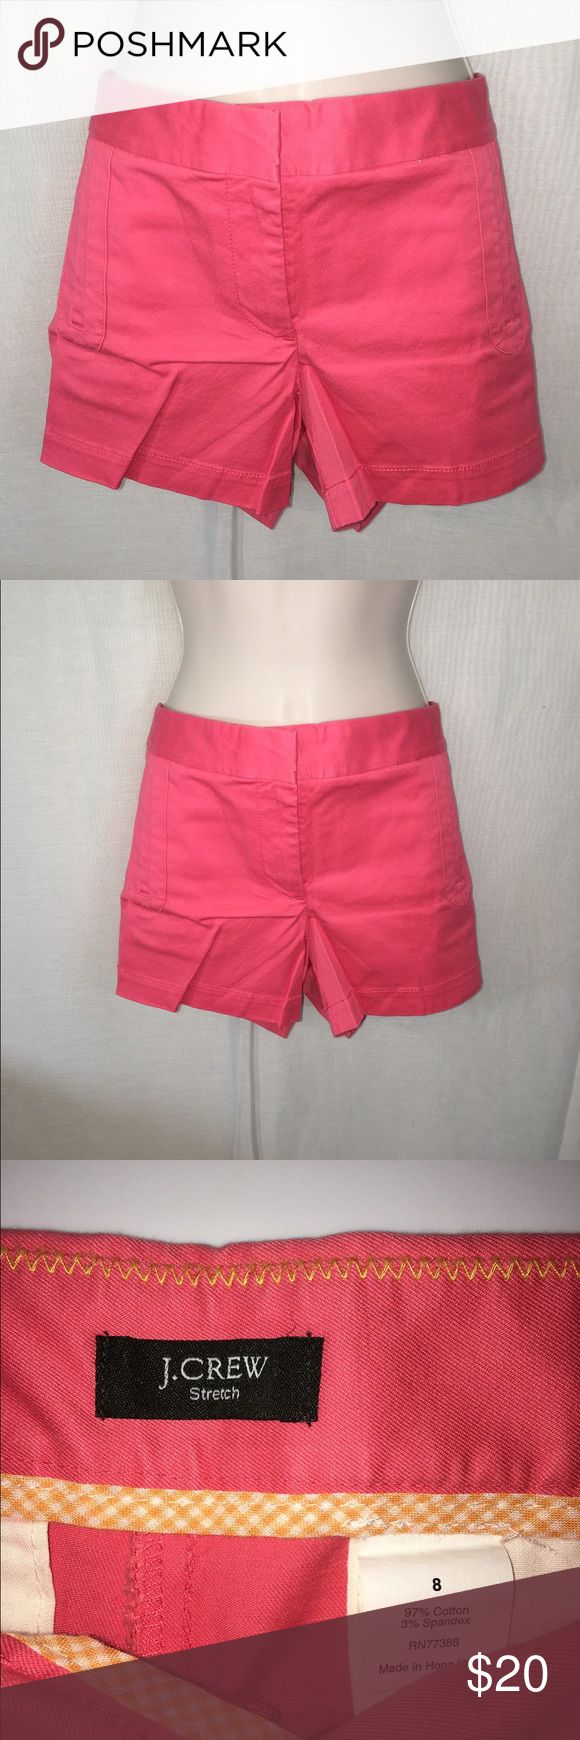 J. Crew Coral Shorts-8 A beautiful pair of coral shorts from J.Crew that are in mint condition! Great color and great quality! J. Crew Shorts